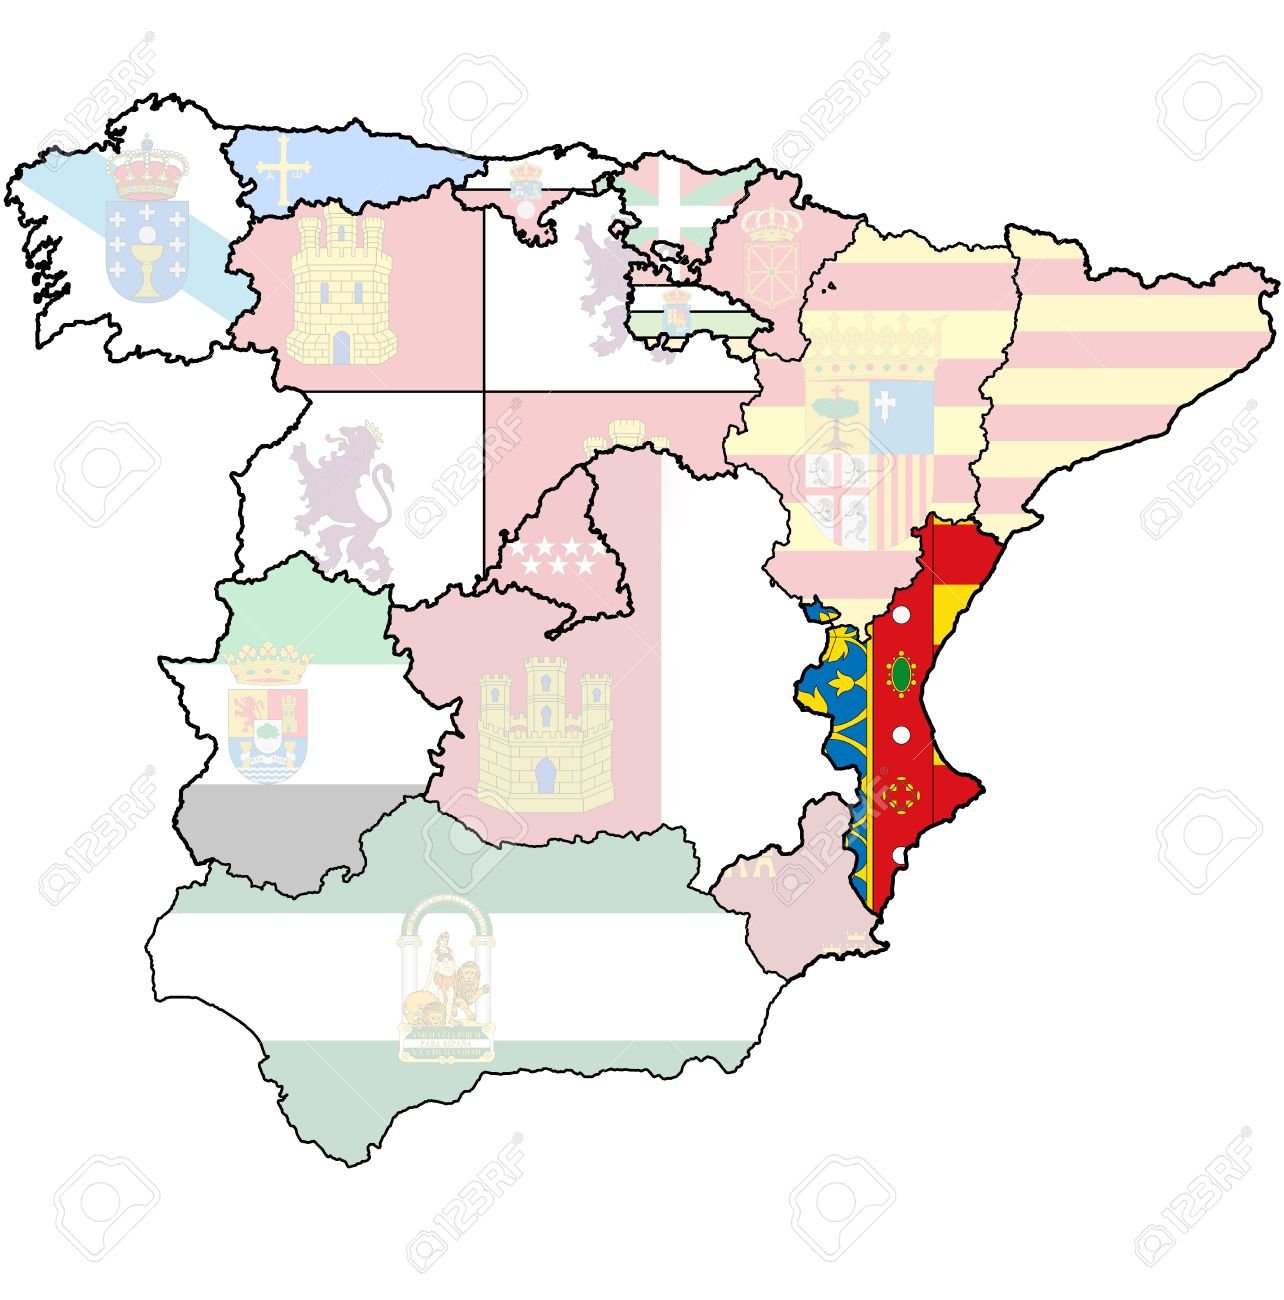 Valencia Region On Administration Map Of Regions Of Spain With